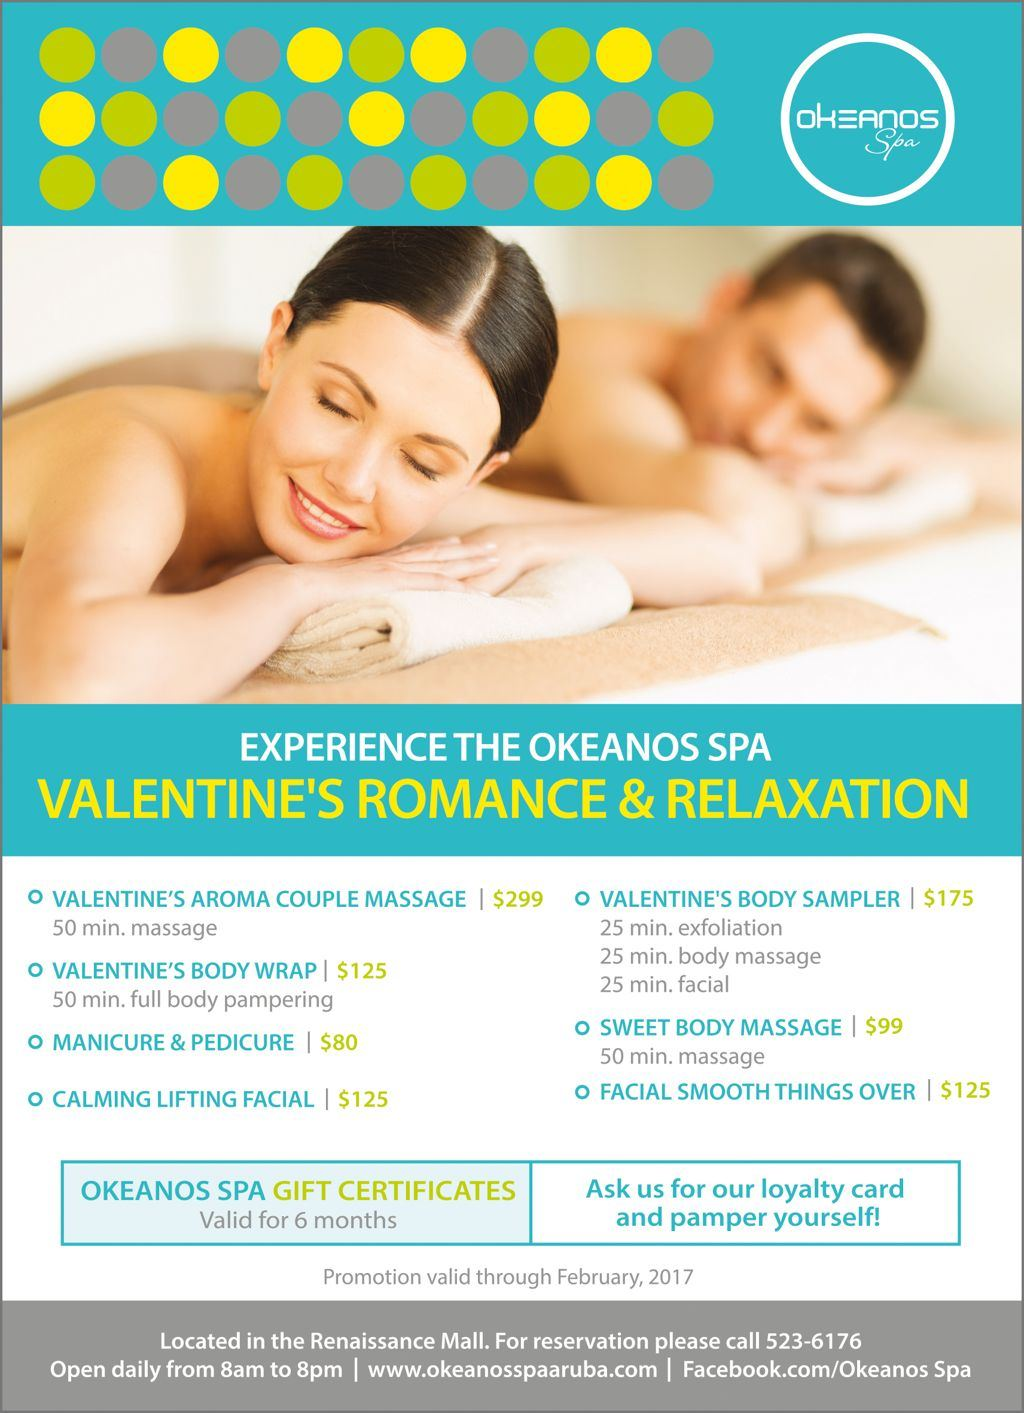 Valentine's Romance & Relaxation at Okeanos Spa